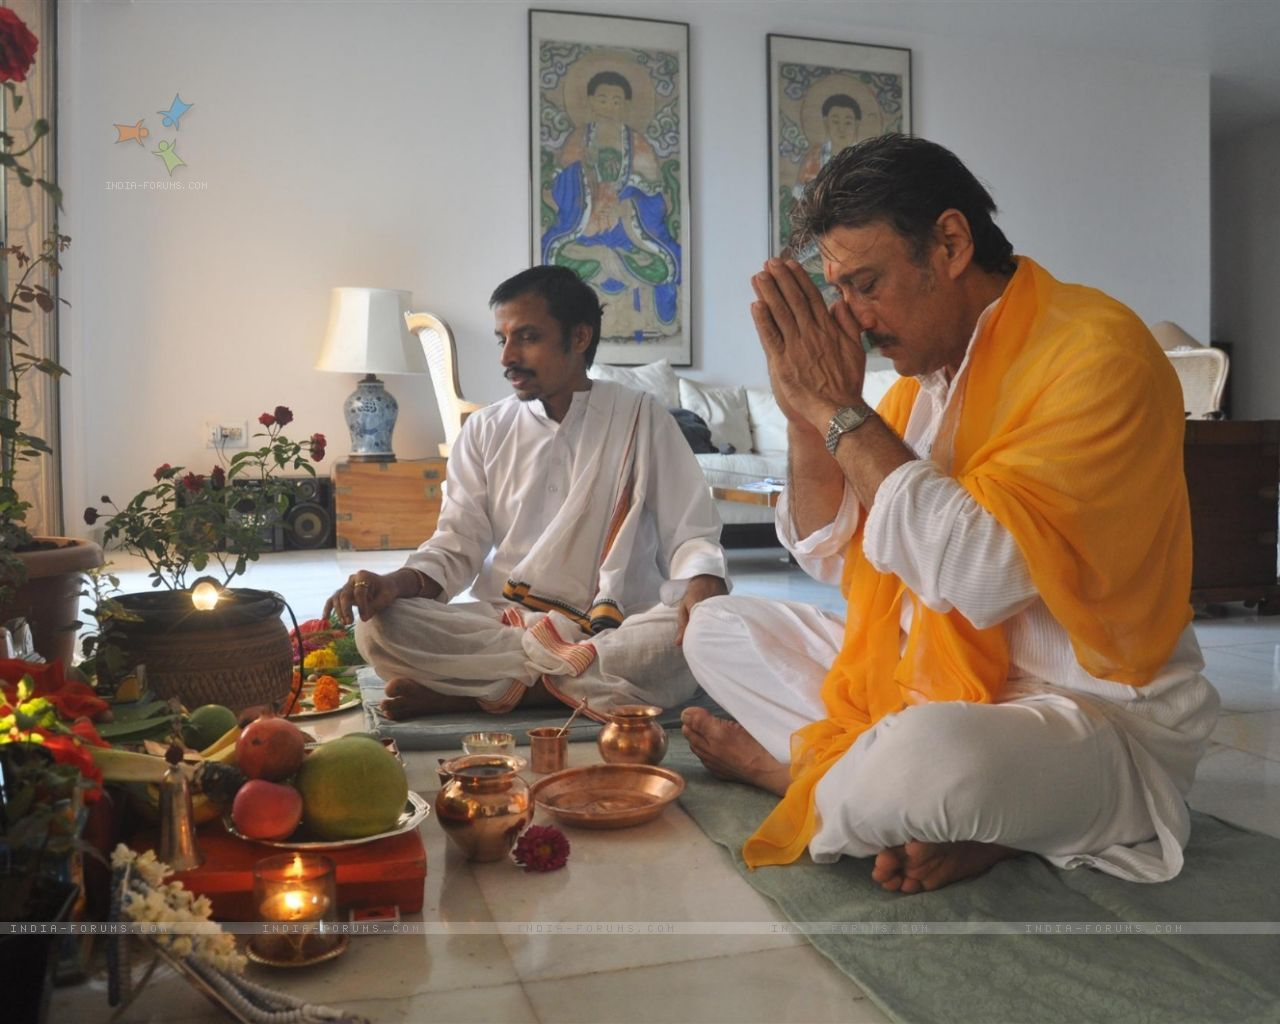 a hindu has the freedomt to offers prayers at home may or